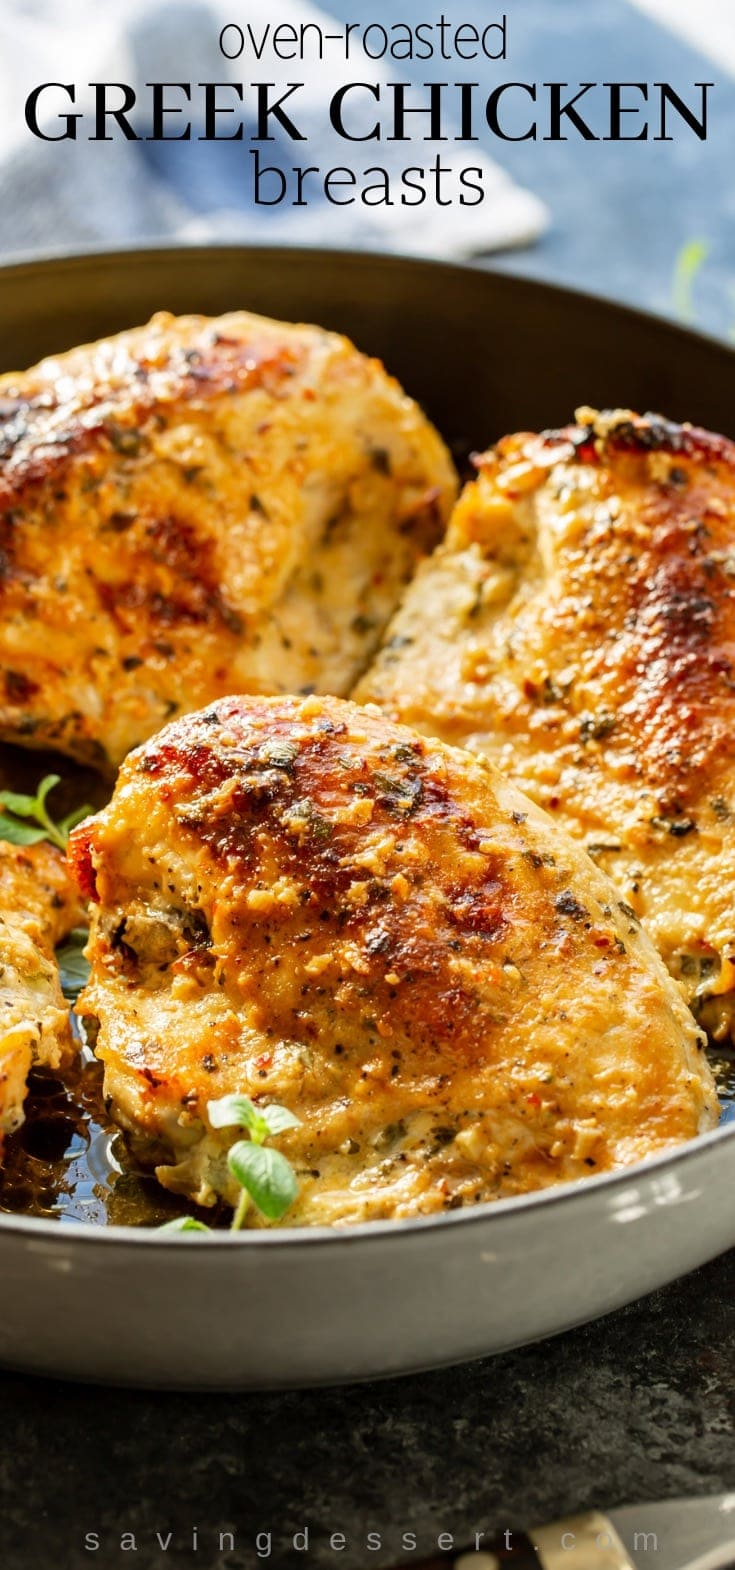 Oven Roasted Greek Chicken Breasts - Enjoy these Mediterranean inspired meaty chicken pieces marinated in an herb and garlic yogurt sauce then slow roasted to juicy perfection! #savingroomfordessert #ovenroastedchicken #Greek #Greekchicken #easydinner #roastedchicken #chickenbreasts #chicken #mediterranean